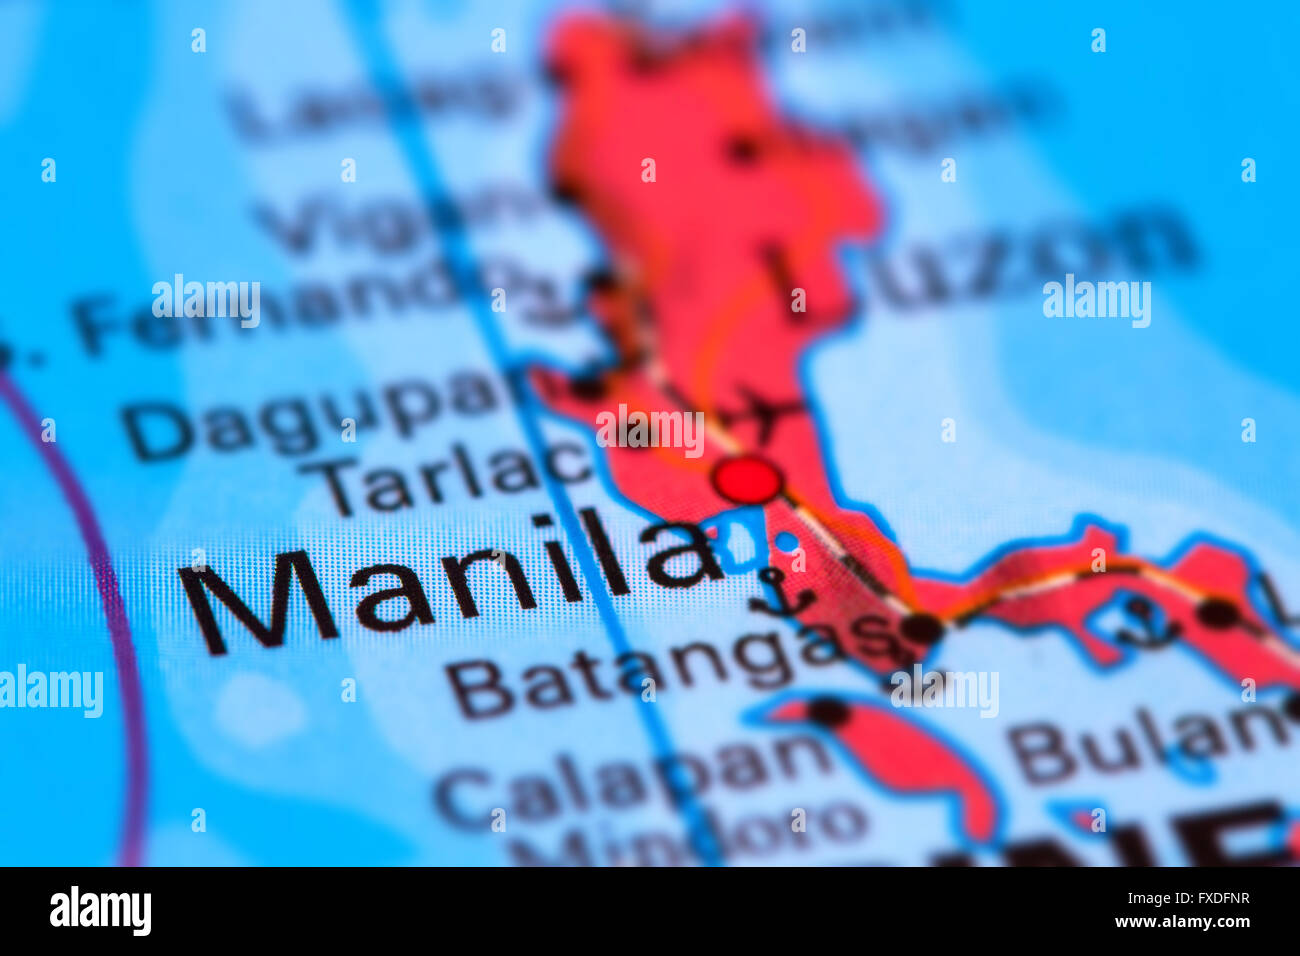 Manila capital city of the philippines on the world map stock photo manila capital city of the philippines on the world map gumiabroncs